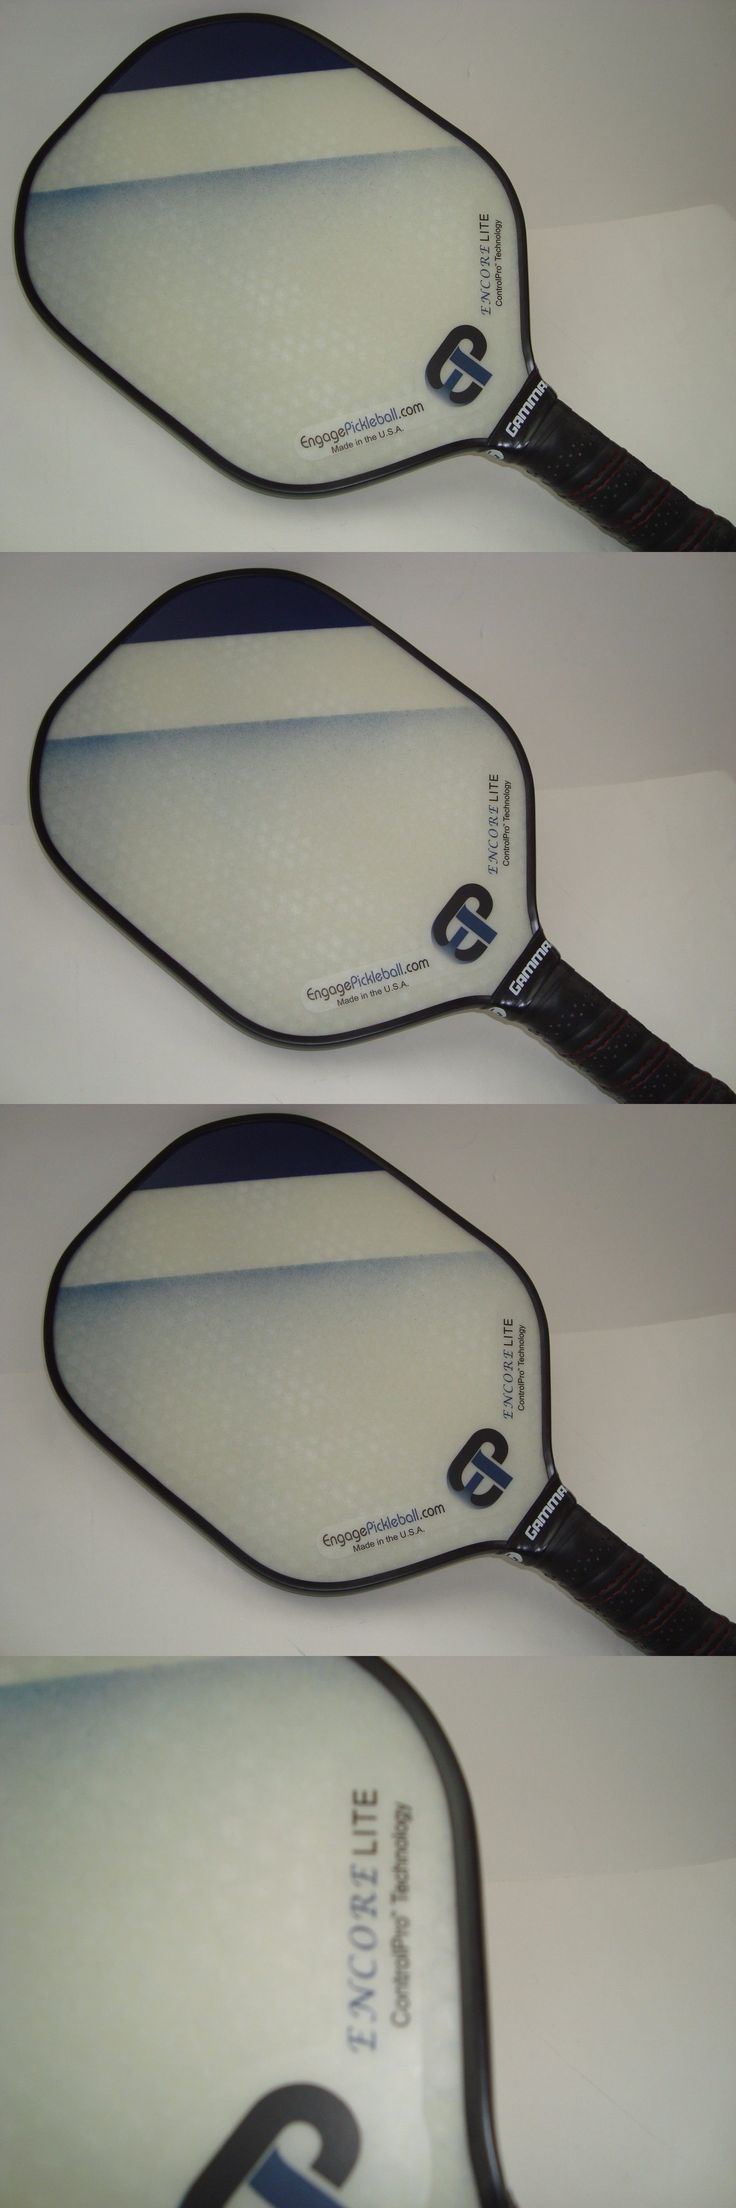 Other Tennis and Racquet Sports 159135: Super New Engage Encore Lite Pickleball Paddle Super Light And Quick Blue Fade -> BUY IT NOW ONLY: $79.0 on eBay!